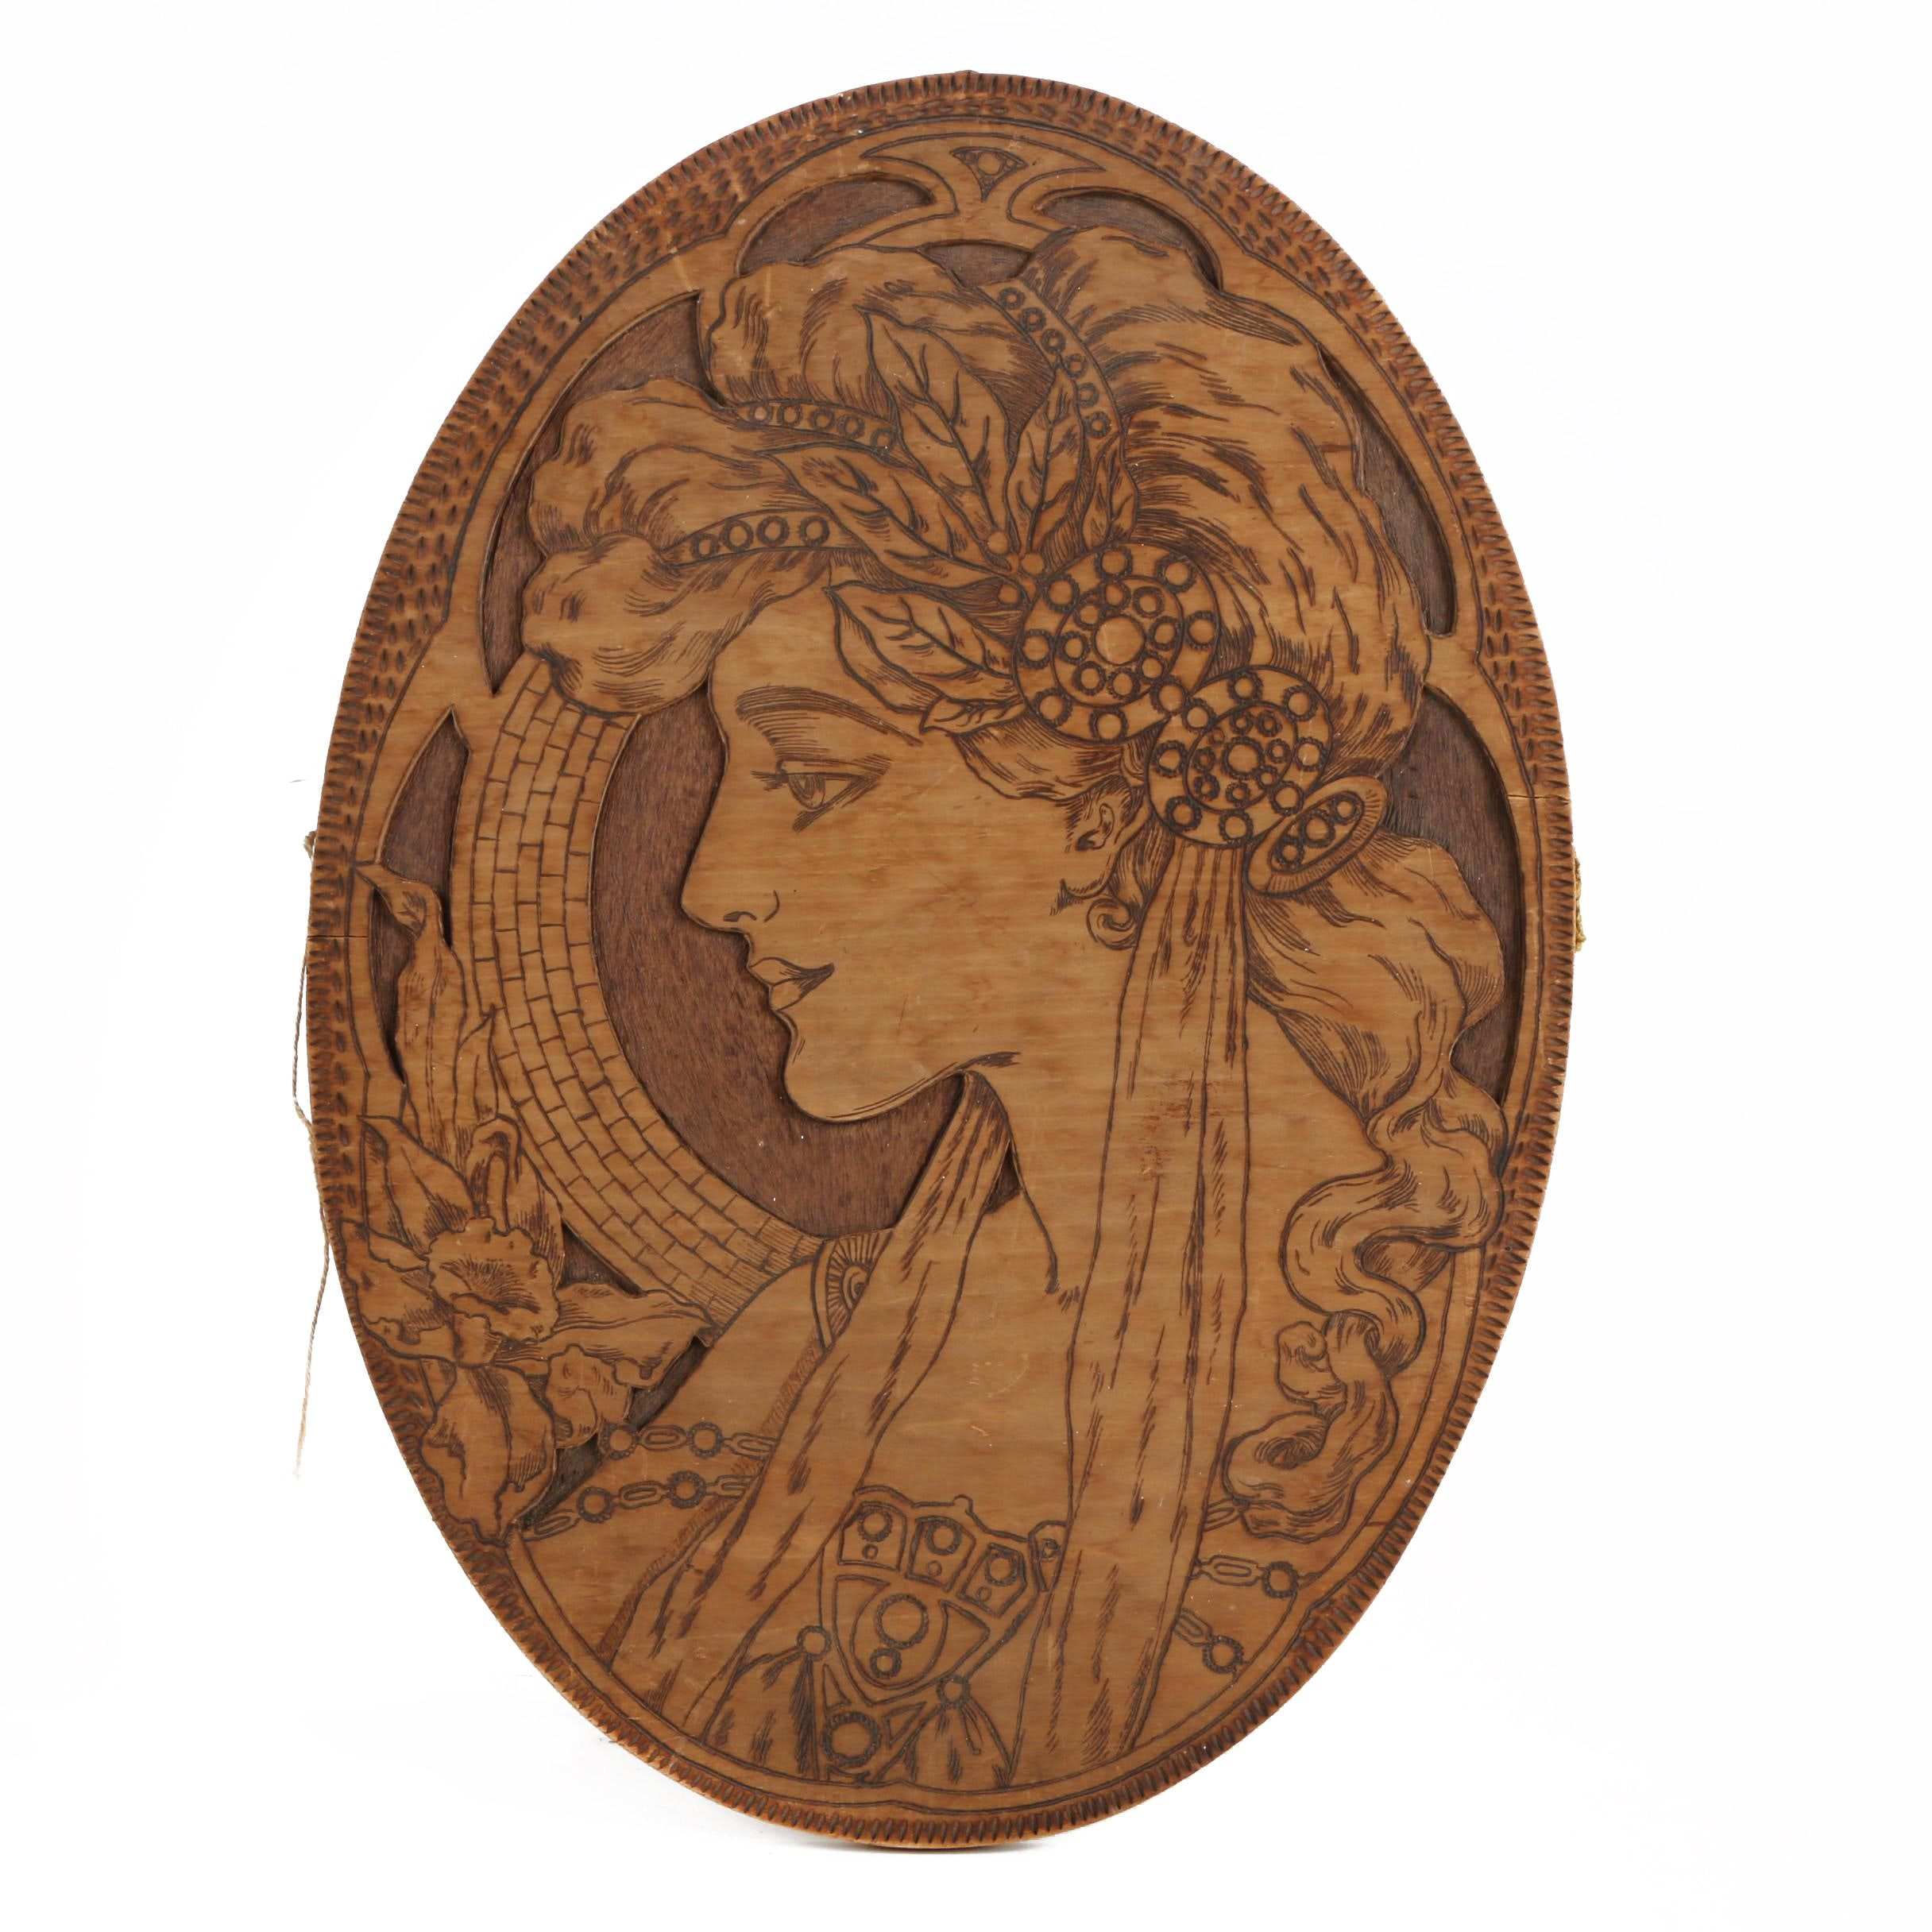 Art Nouveau Relief Plaque in the Manner of Alphonse Mucha